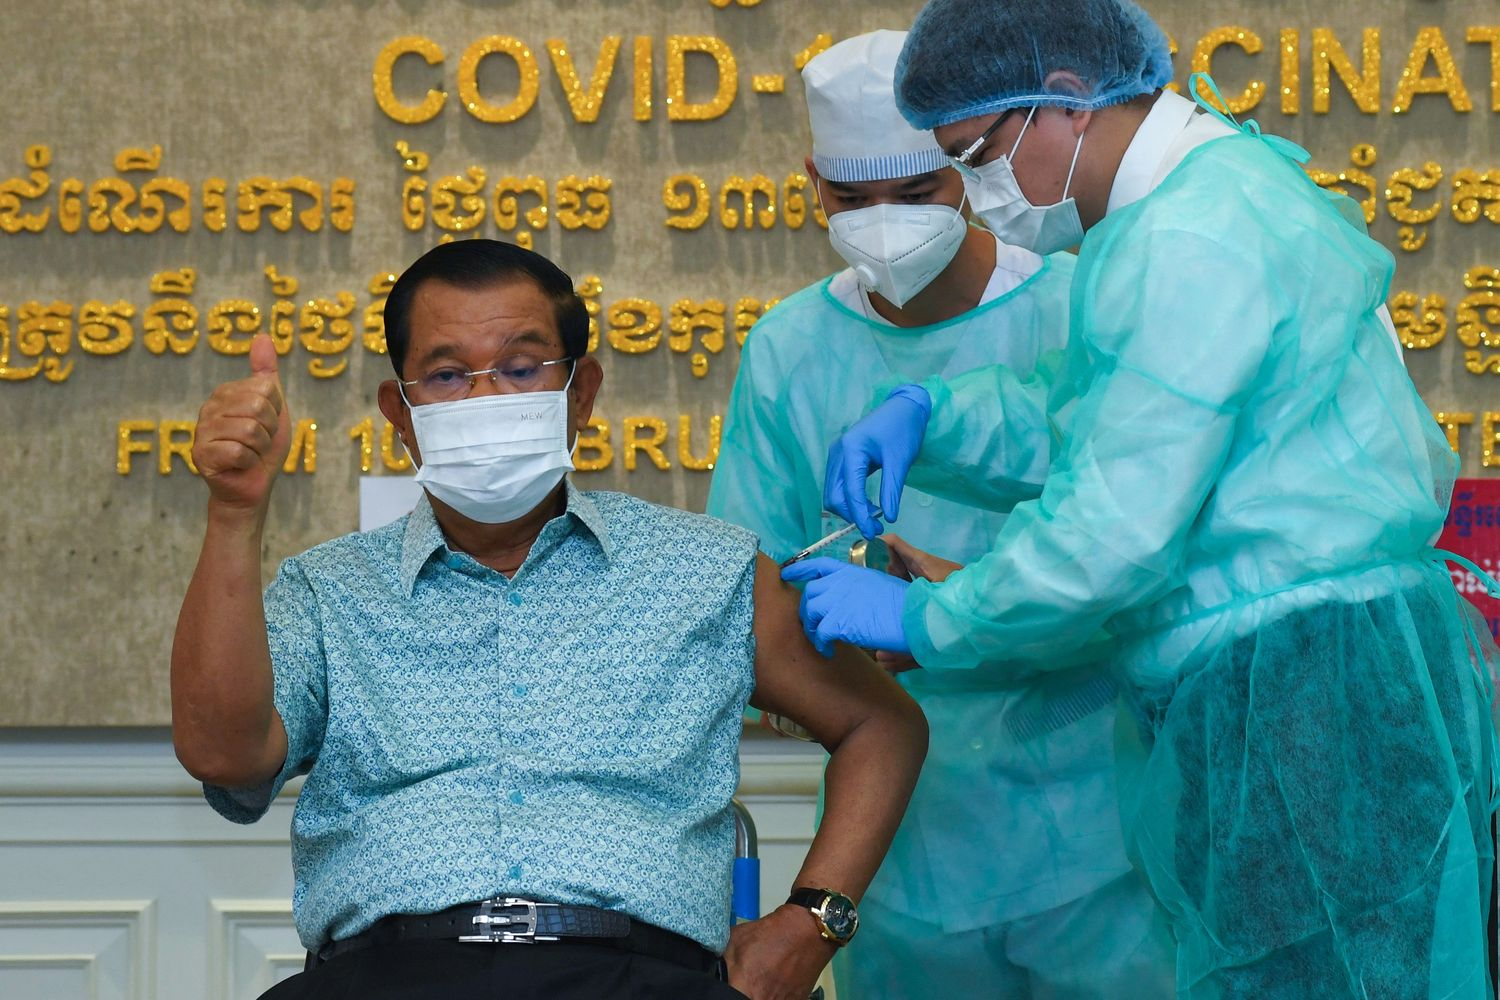 Cambodian Prime Minister Hun Sen gestures as he receives the AstraZeneca vaccine during a vaccination campaign against the Covid-19 coronavirus at Calmette hospital in Phnom Penh on Thursday. (AFP photo)